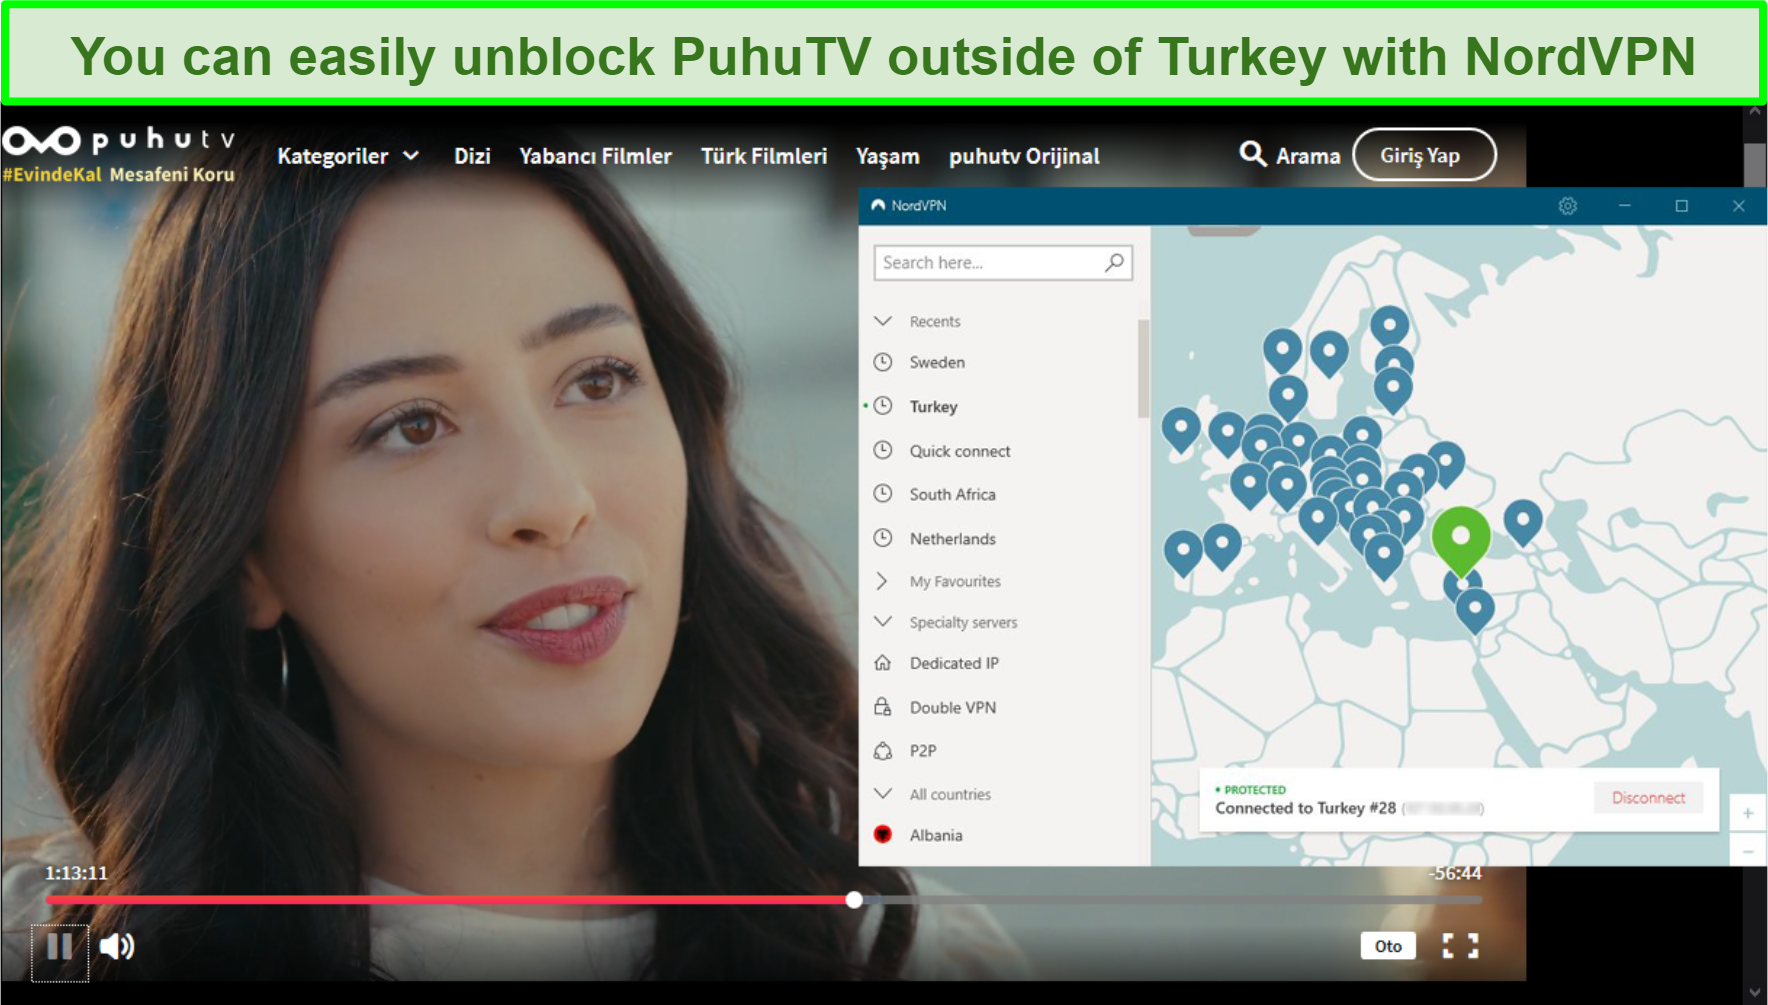 Screenshot of NordVPN interface connected to a server in Turkey while Puhu TV streams Sefirin Kizi